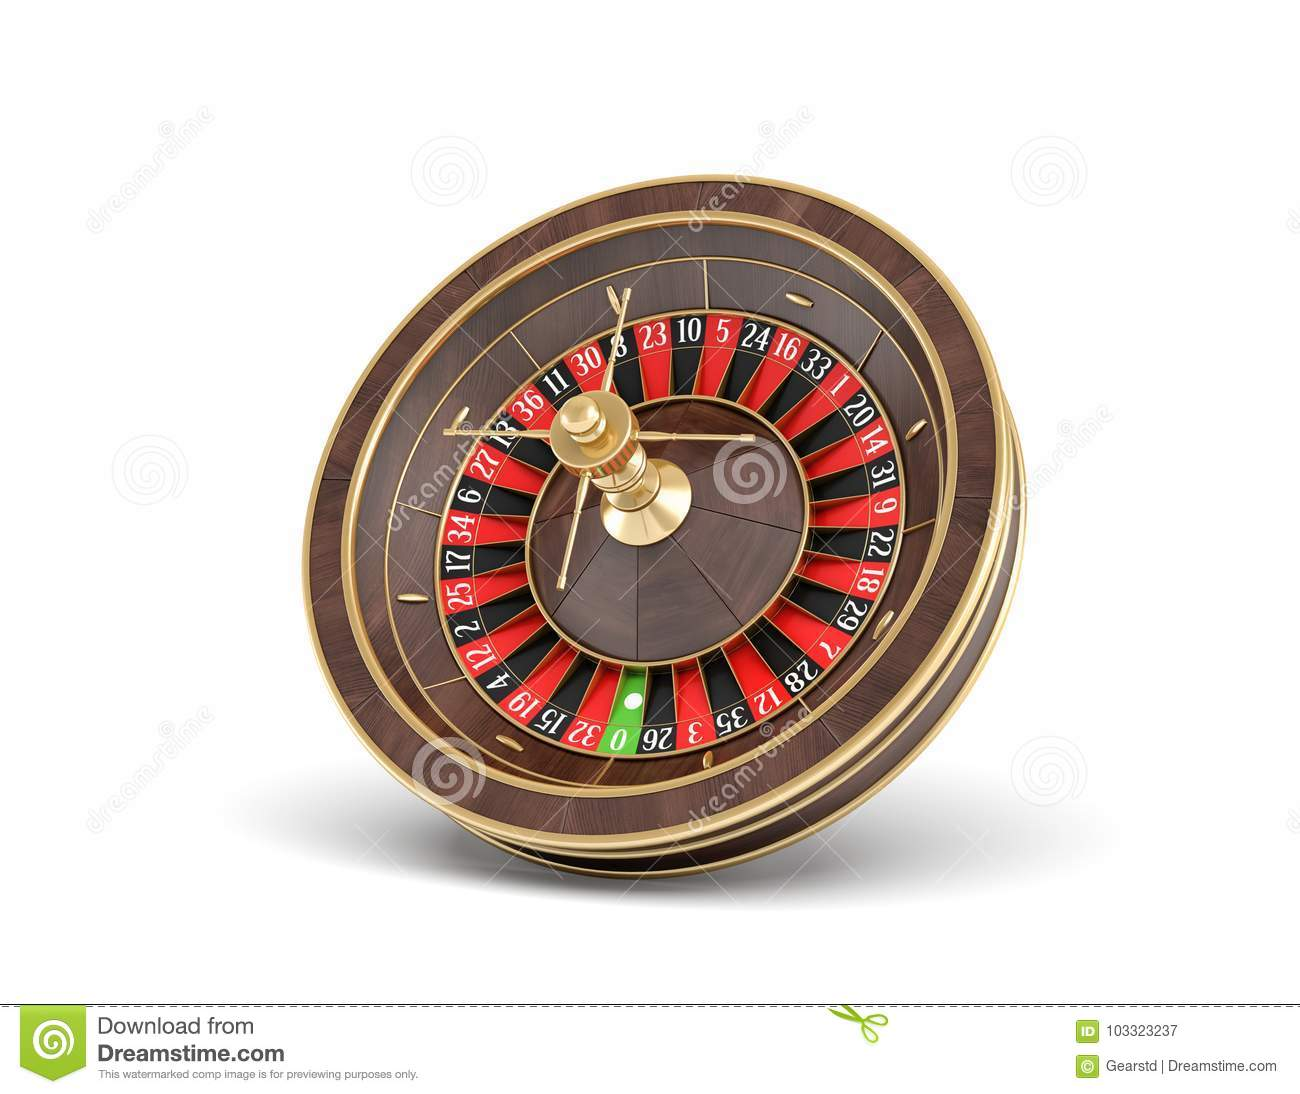 3d rendering of an isolated wooden casino roulette with golden decorations on white background.